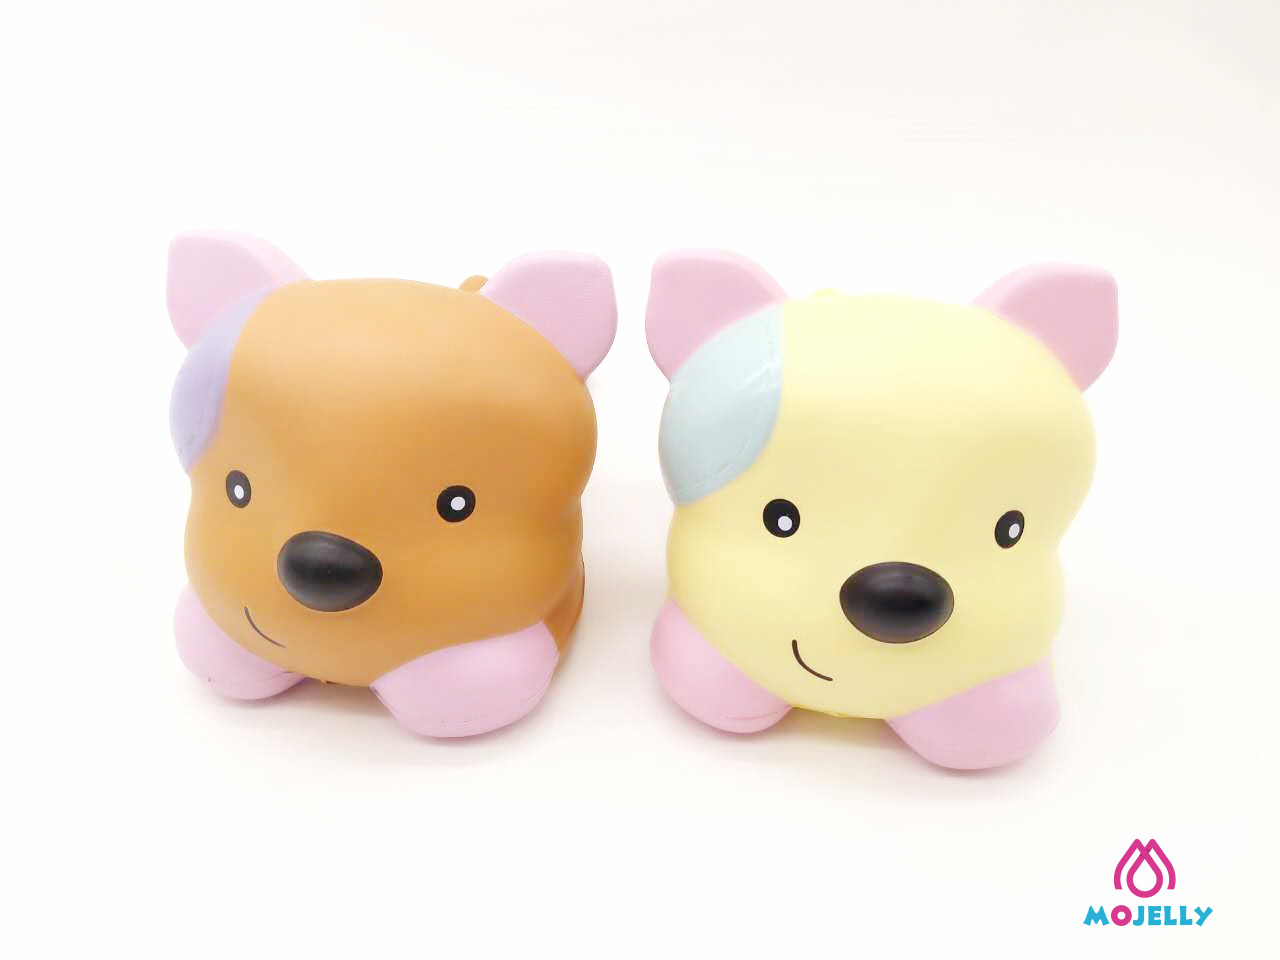 Mojelly – Puppy